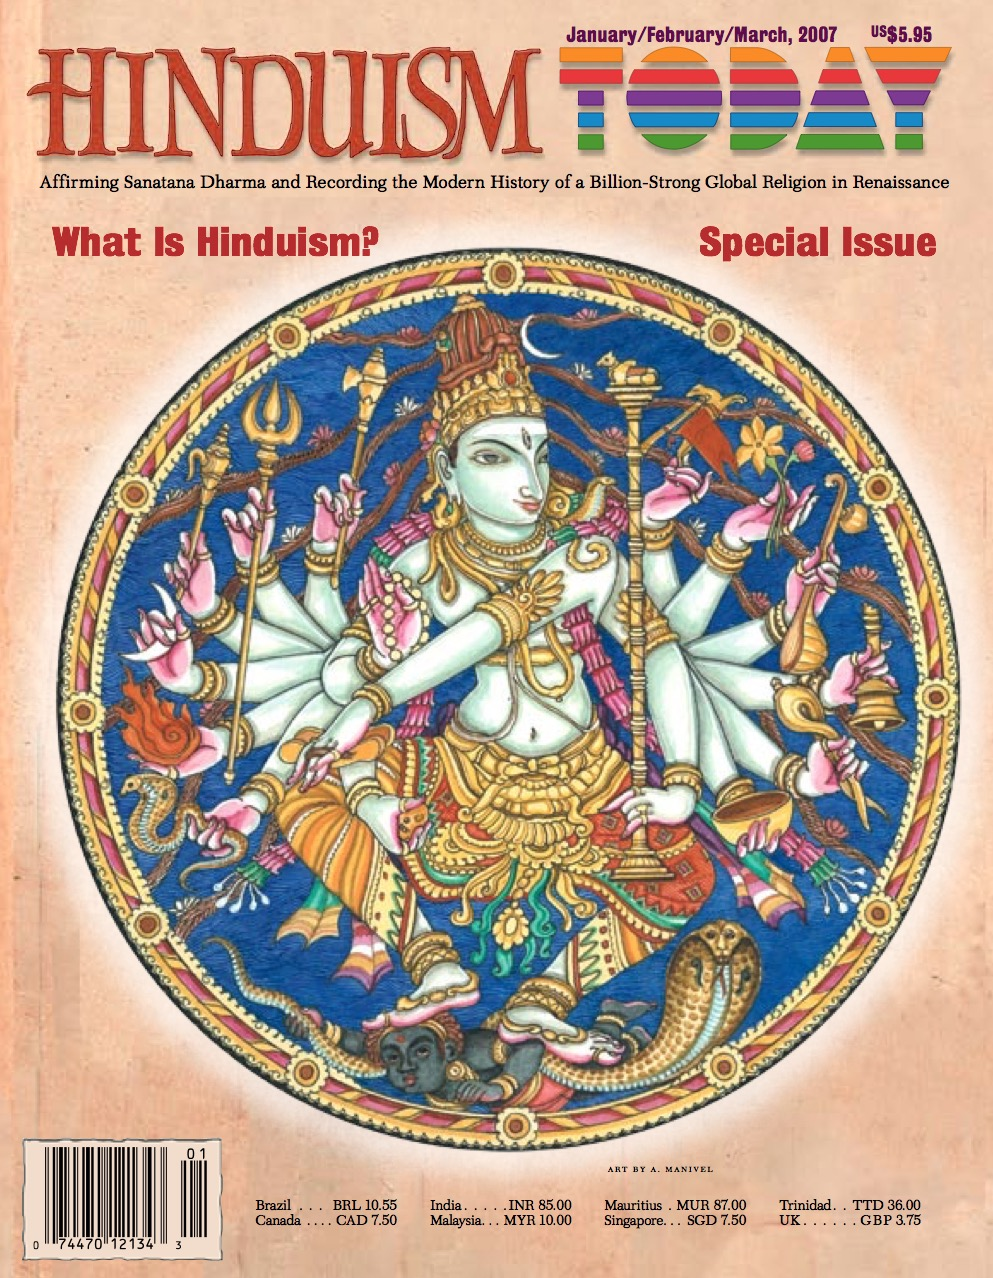 Hinduism Today Jan/Feb/Mar 2007